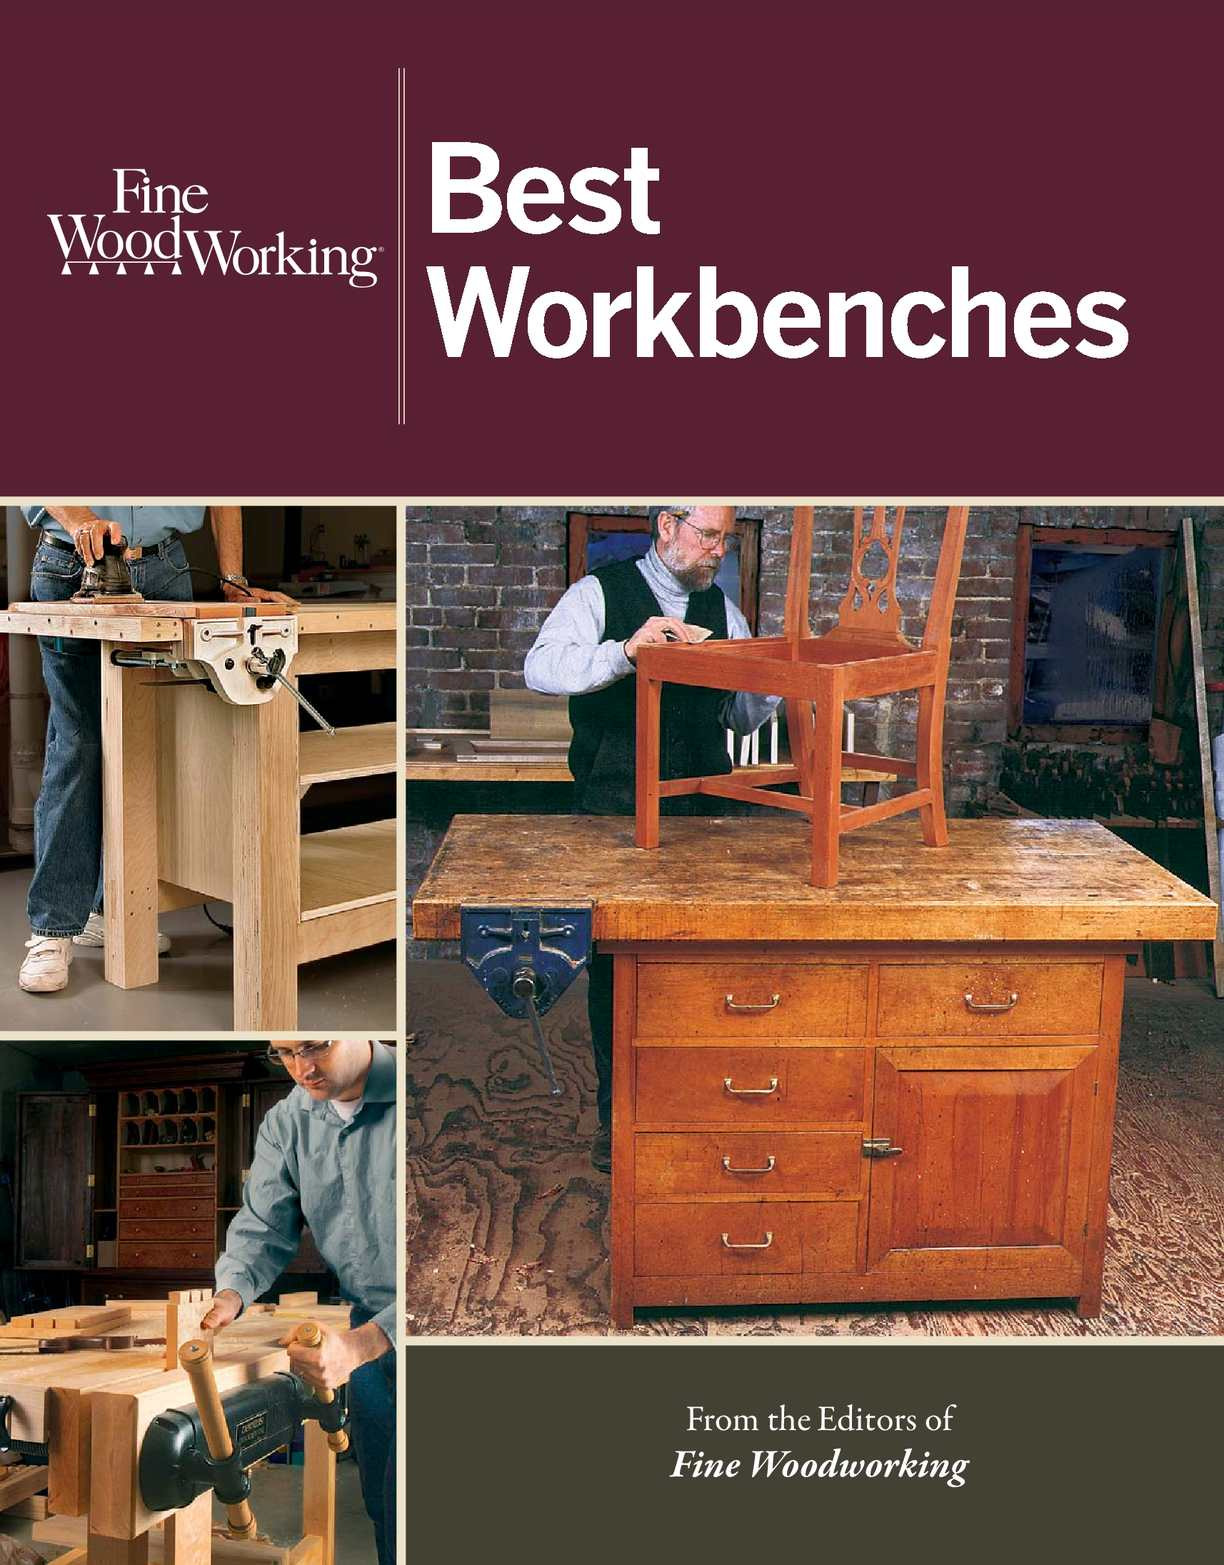 Bench Dog Cast Iron Router Table top Unique Calaméo Best Workbenches Preview